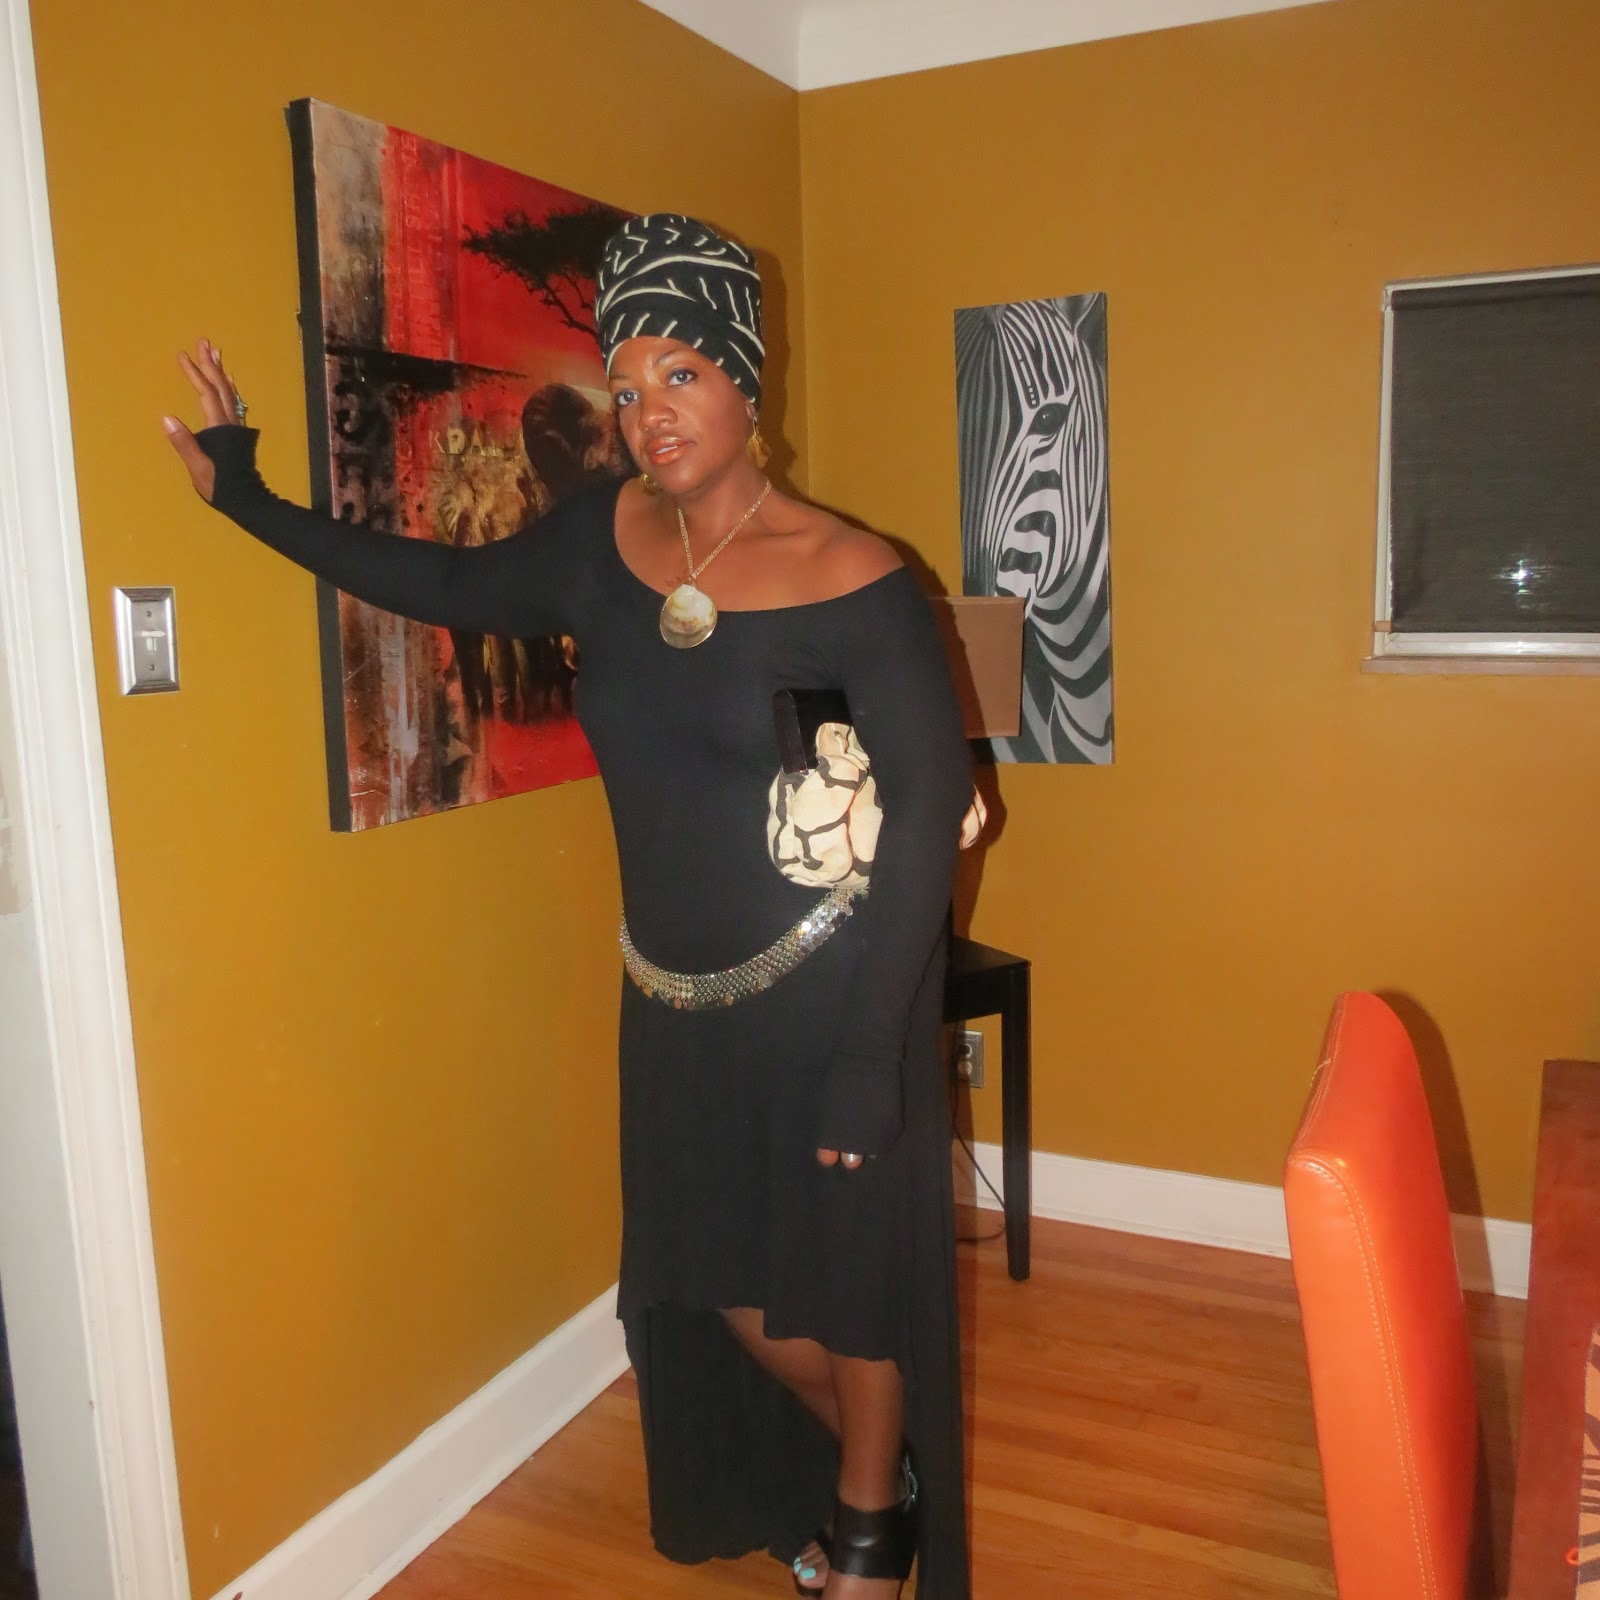 Top 12 Queen Latifah U n i t y Mp3 Download - Gorgeous Tiny